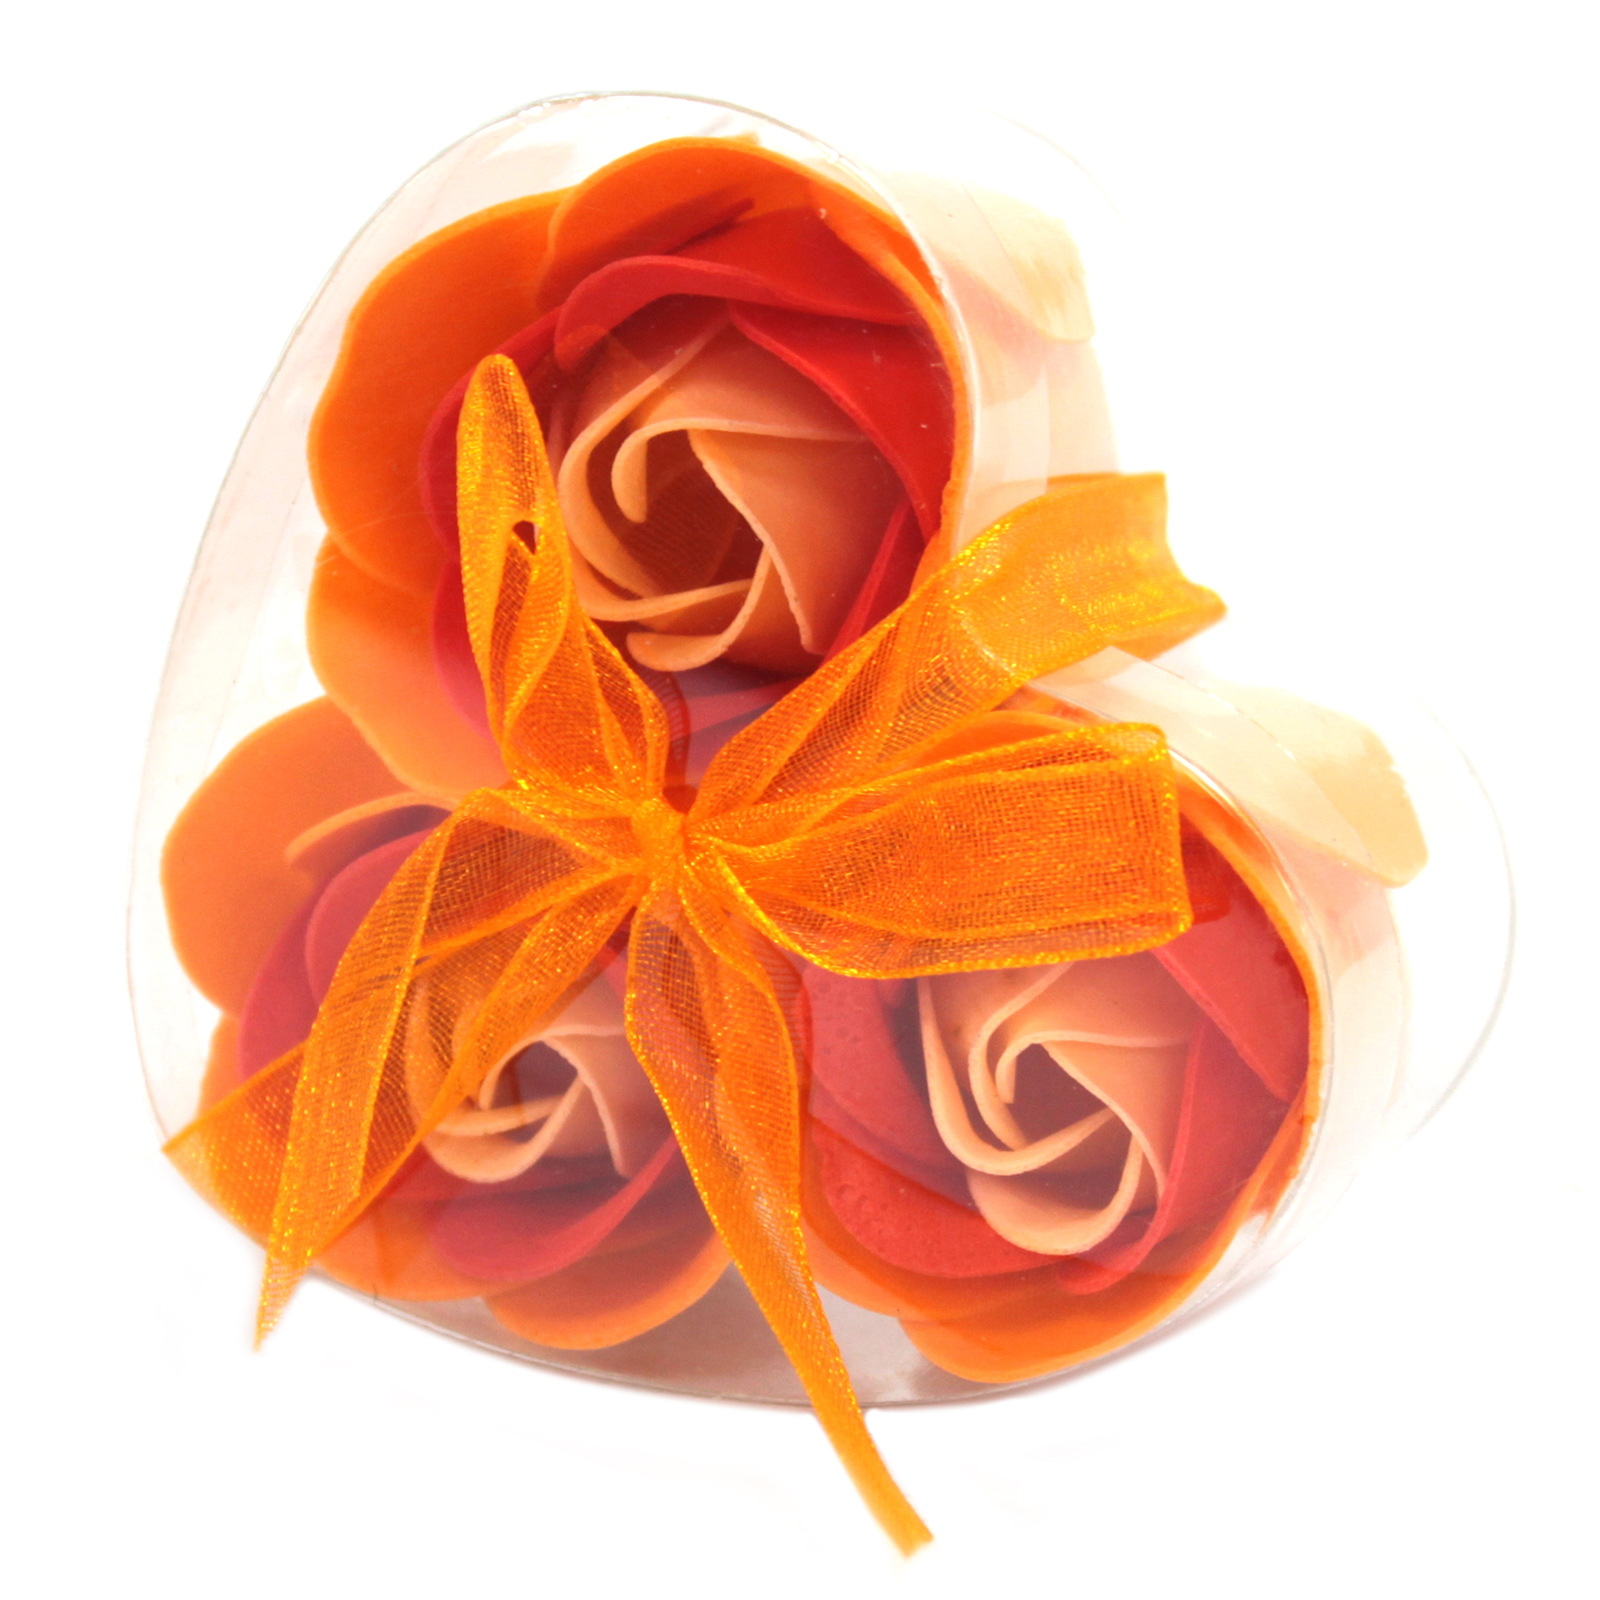 1x Set of 3 Soap Flower Heart Box - Peach Roses